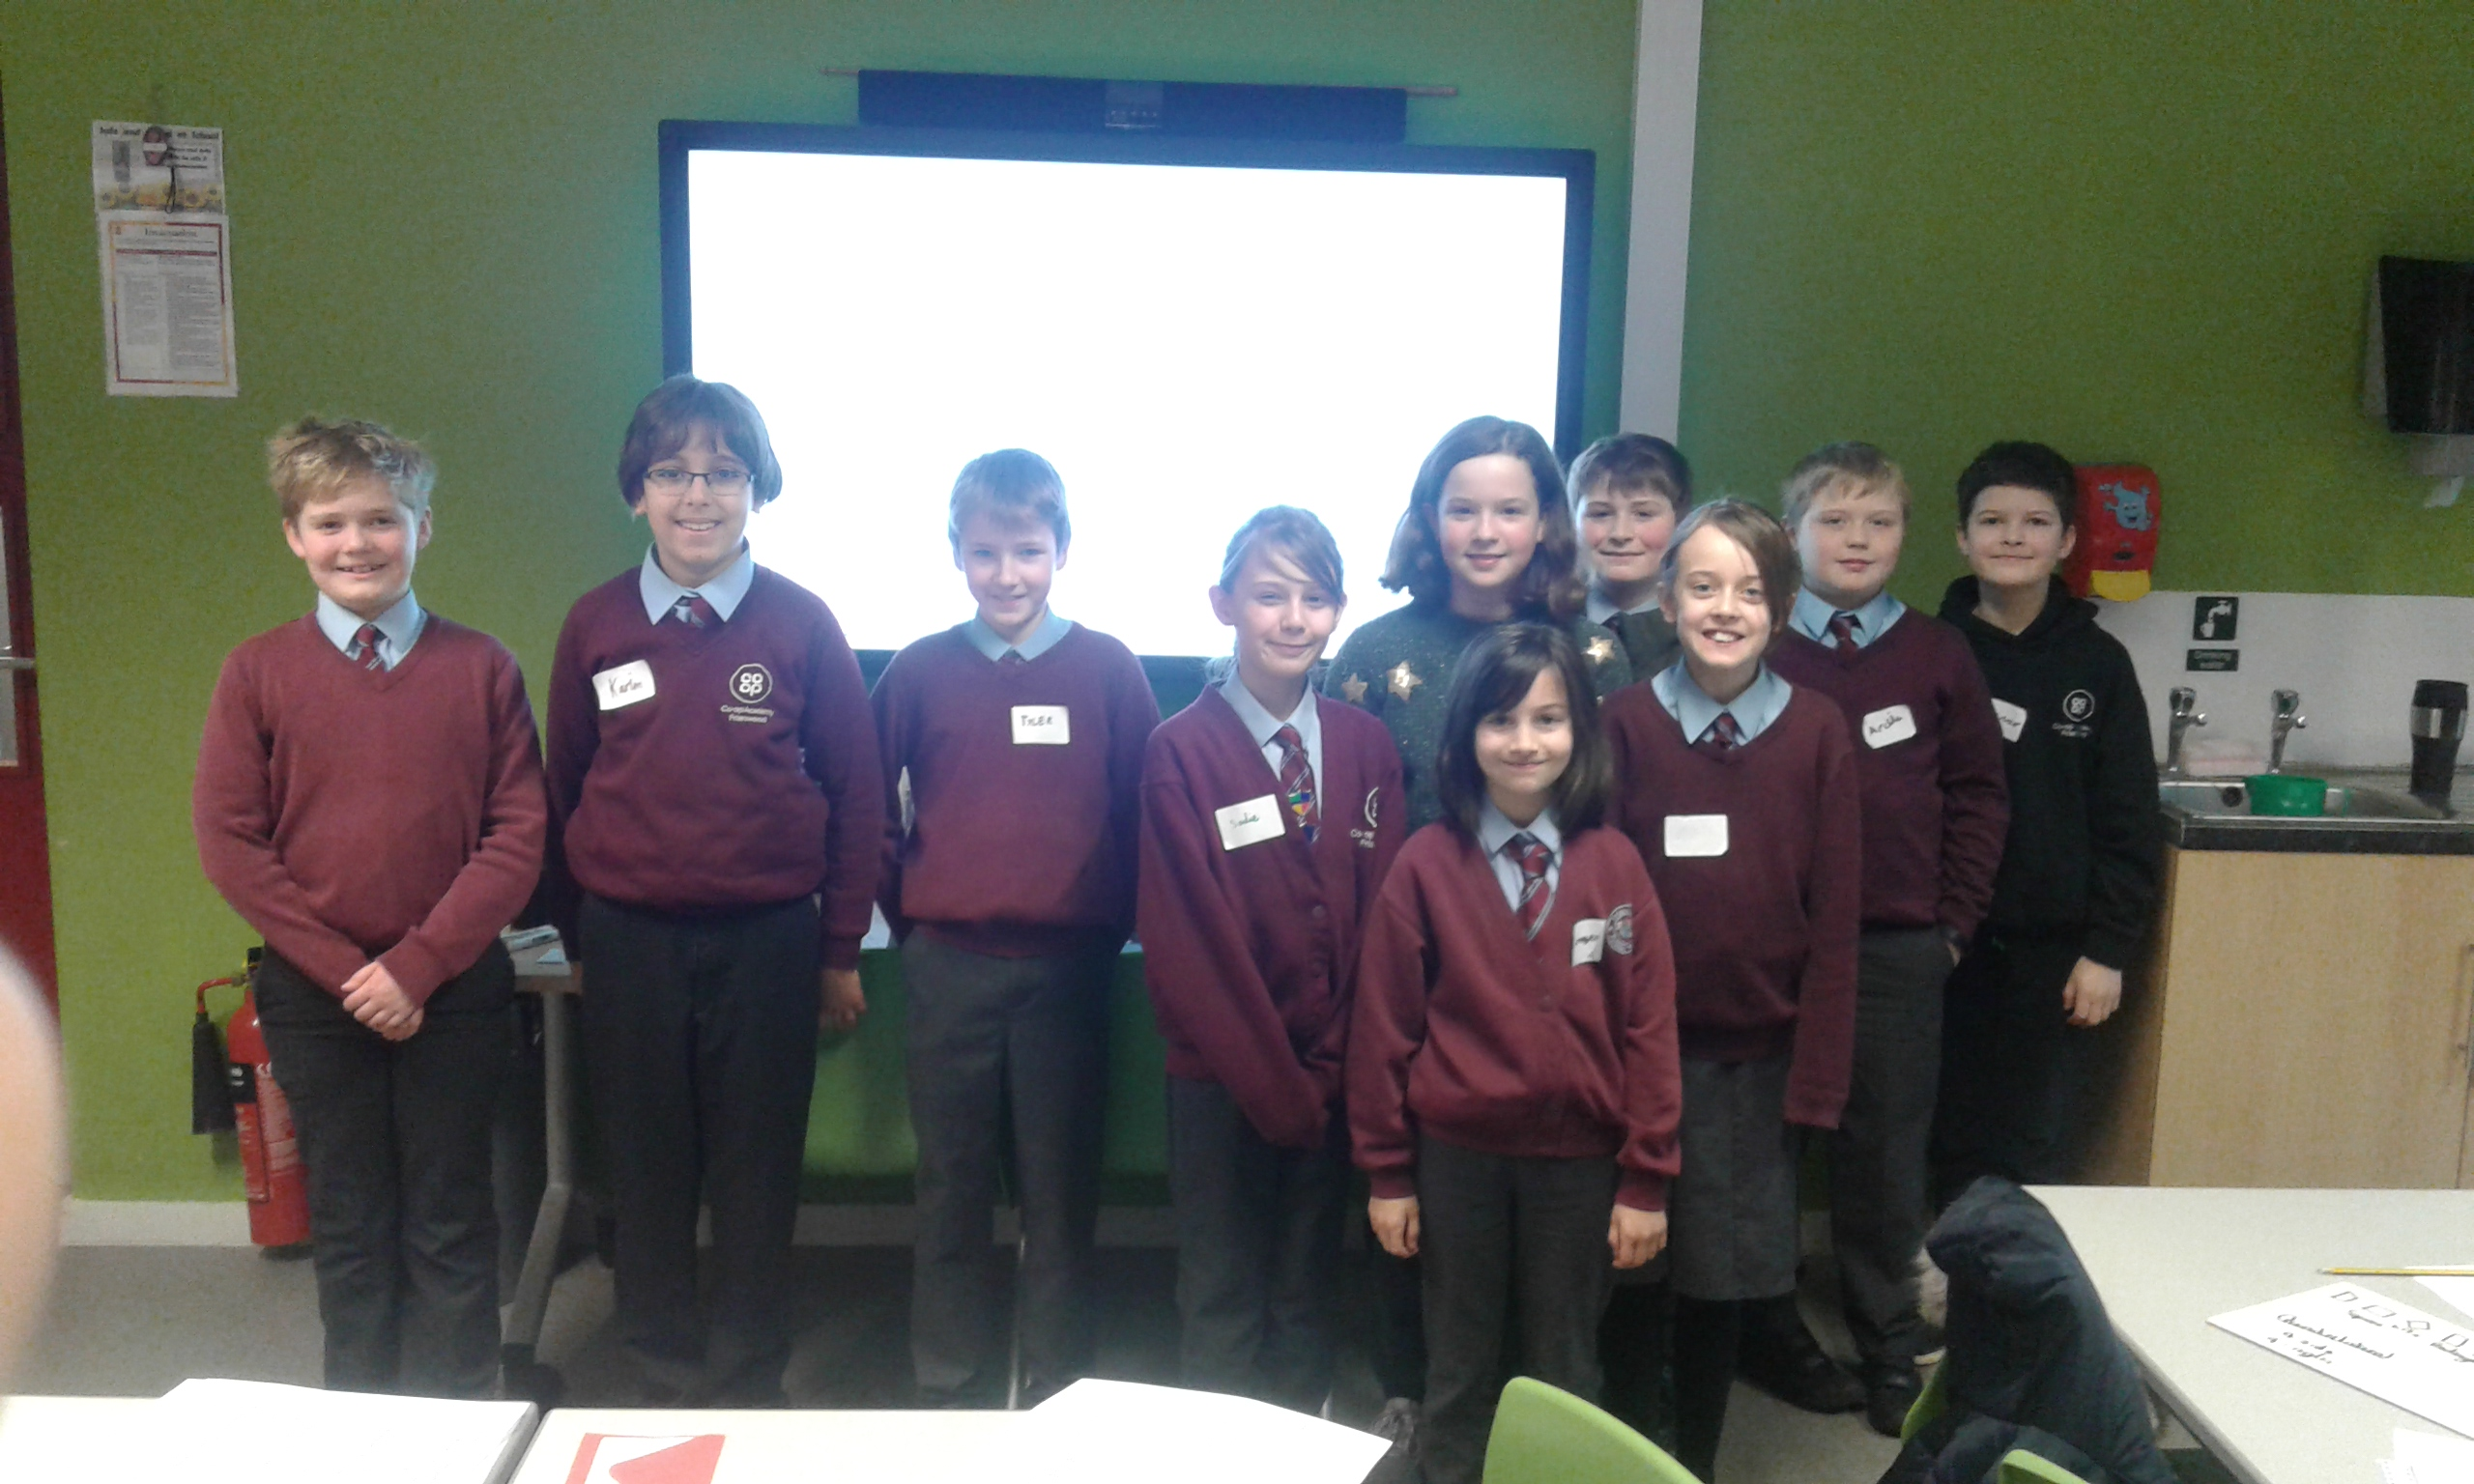 Years 5 and 6 Maths Challenge